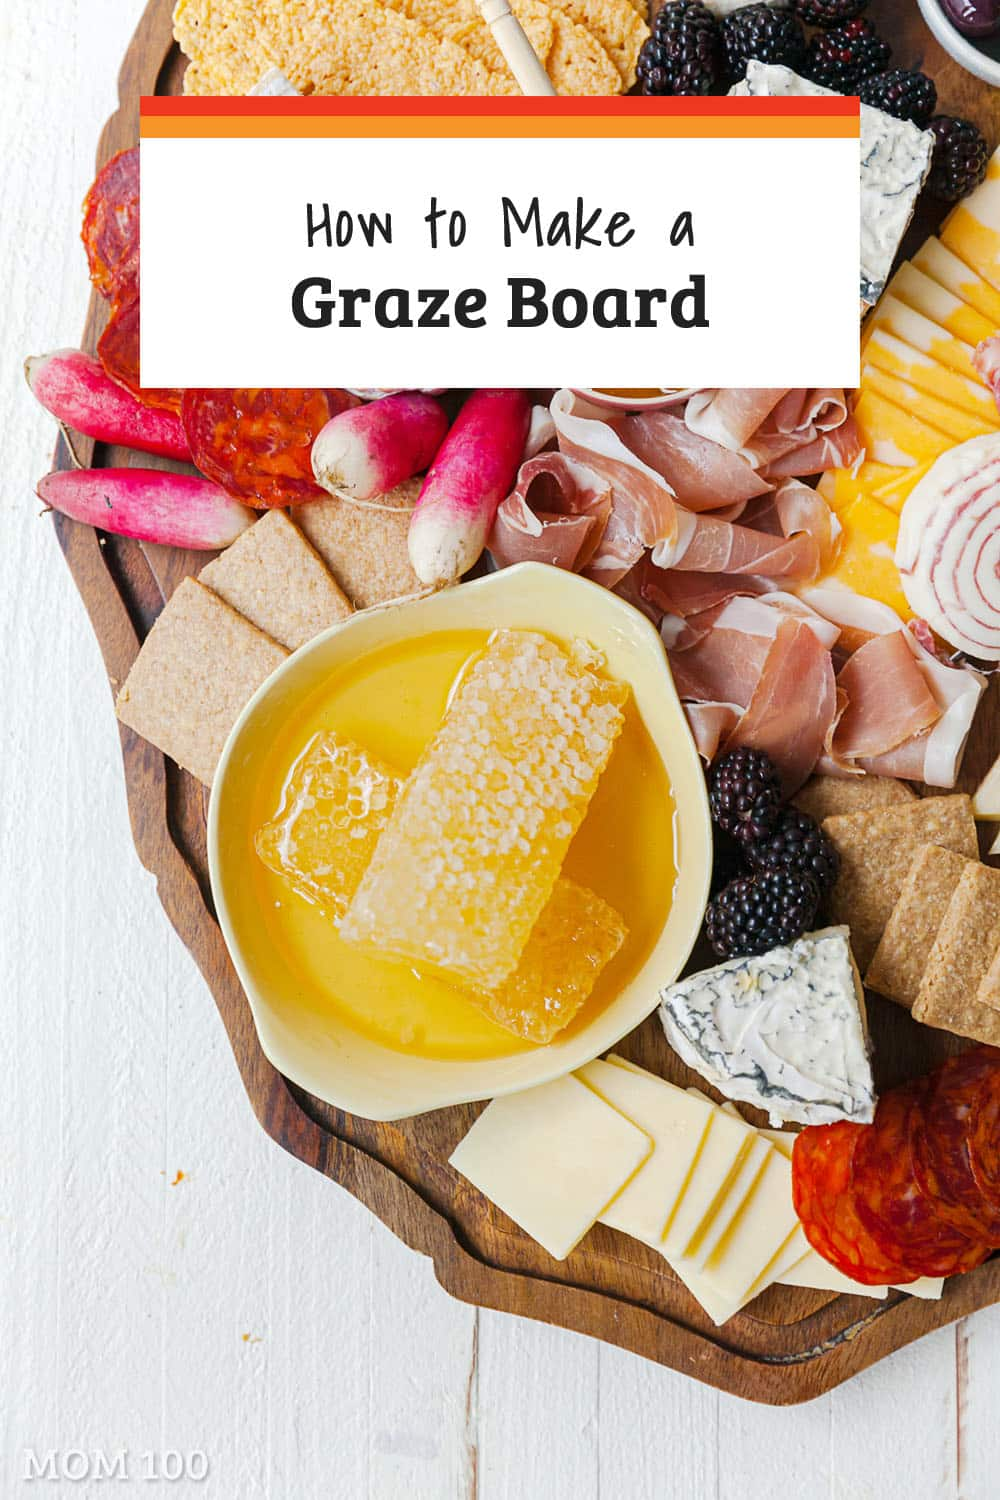 How to Make a Graze Board: from cheeses to meats to spreads to fruits to vegetables to pickles - there\'s room for everything on a graze board. #grazeboard #appetizer